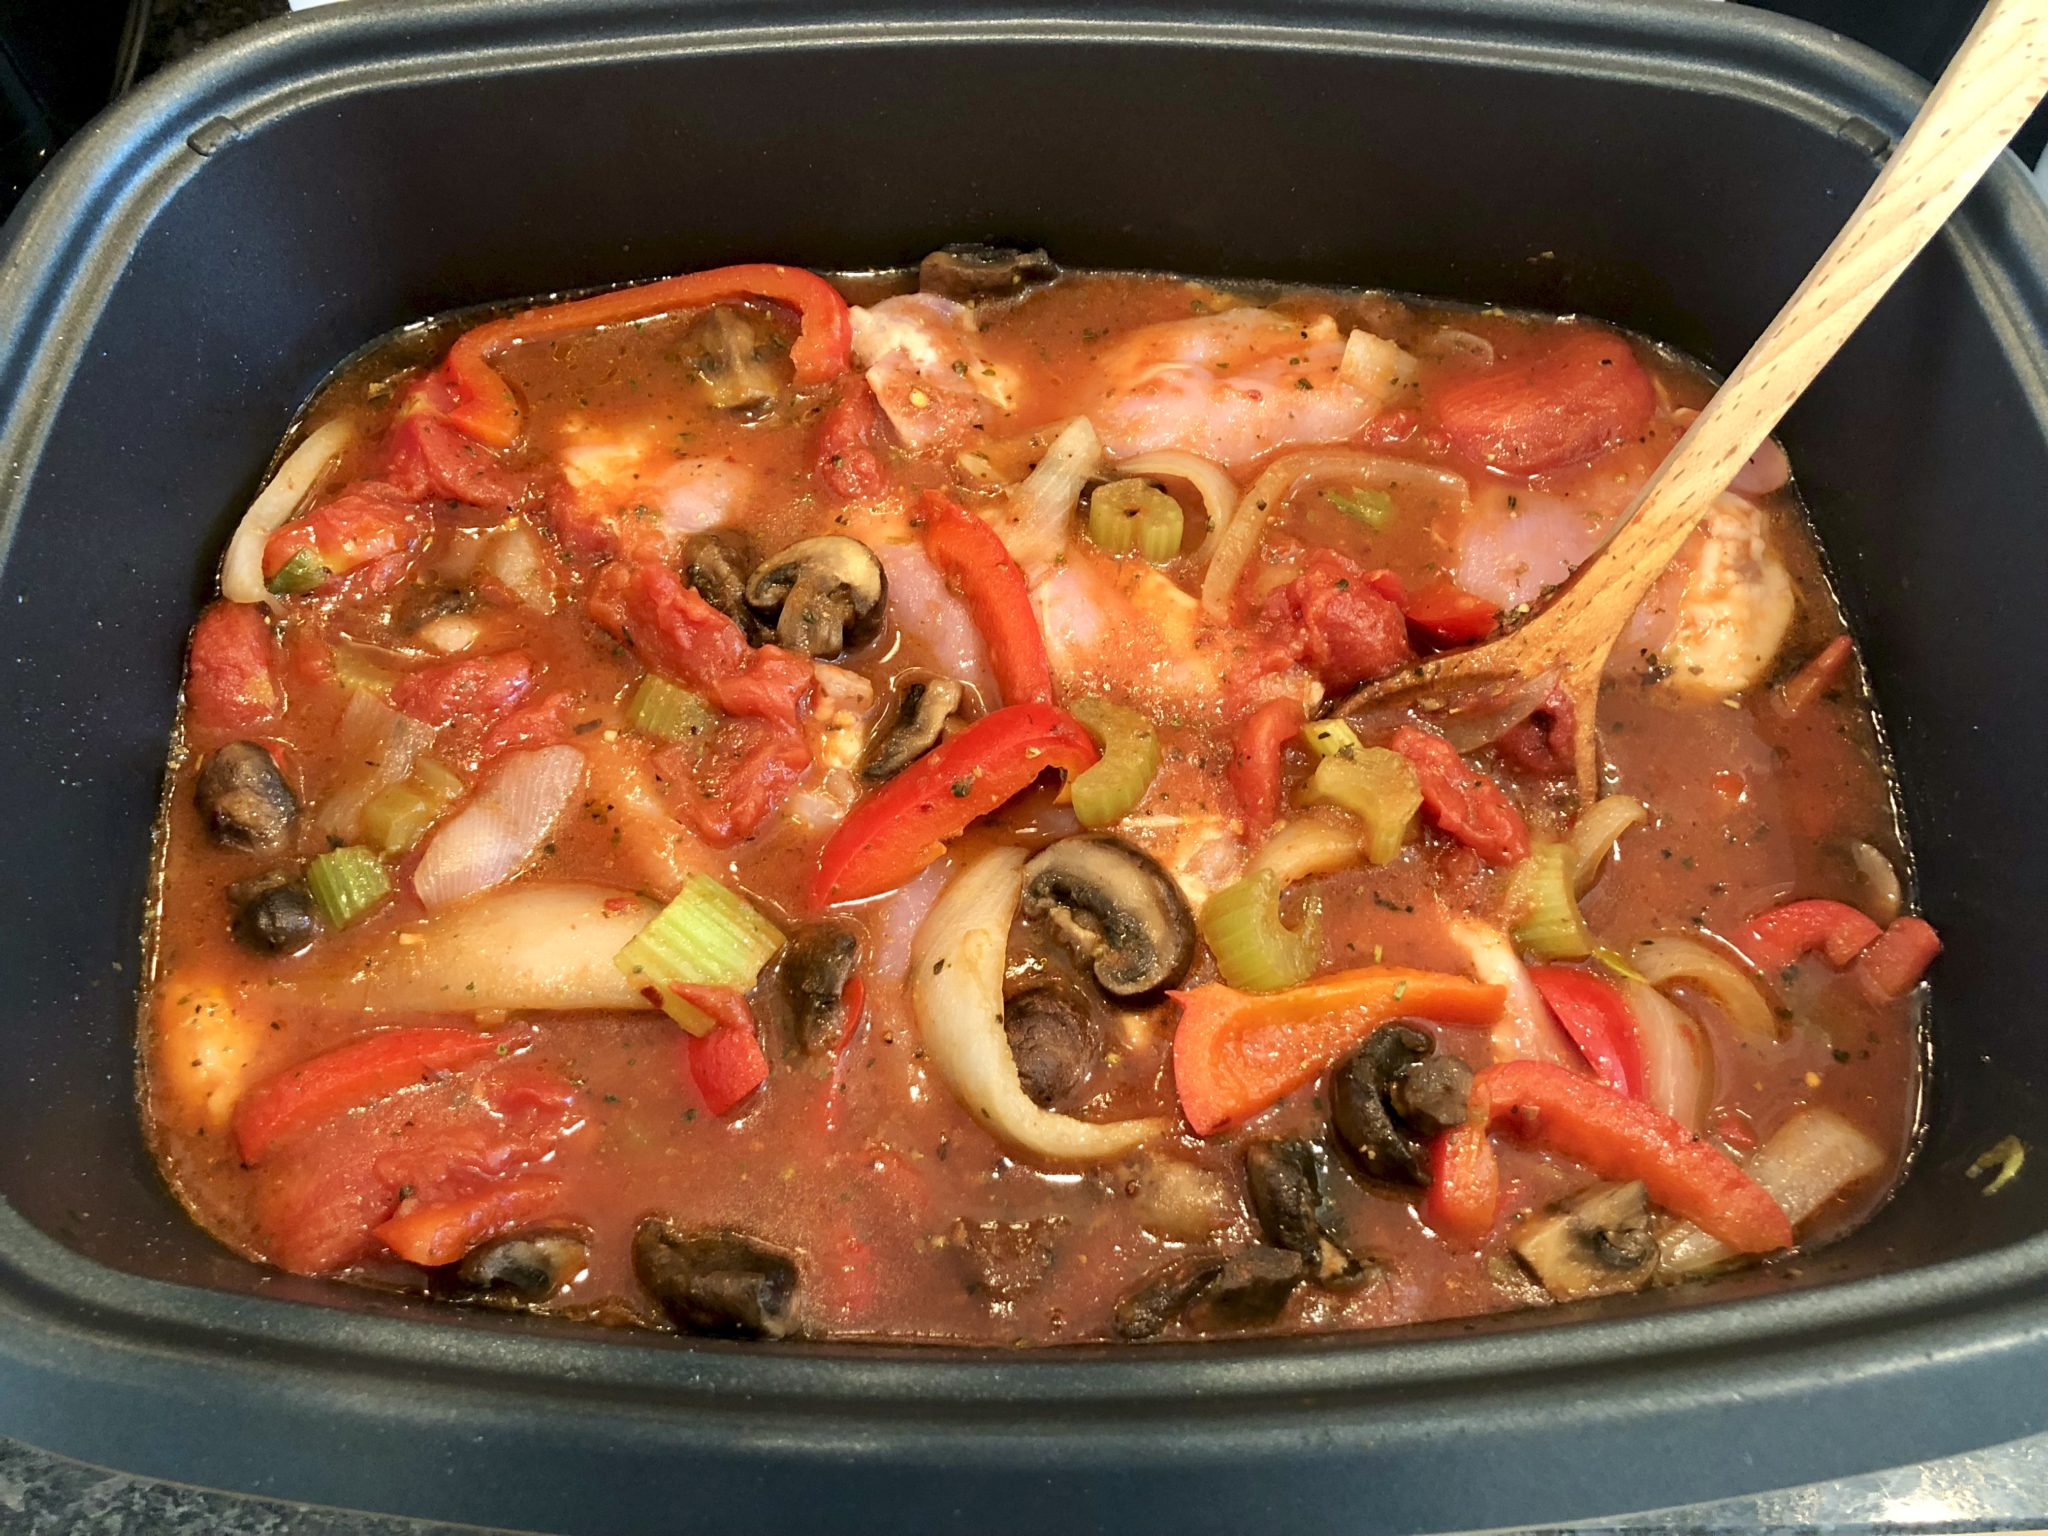 Instant Pot Chicken Cacciatore (with slow cooker option)-Tender, flavorfulchicken and lots of healthy veggies are the hallmark of thiseasy meal. Leftover sauce can be enjoyed like your favoritemarinara.